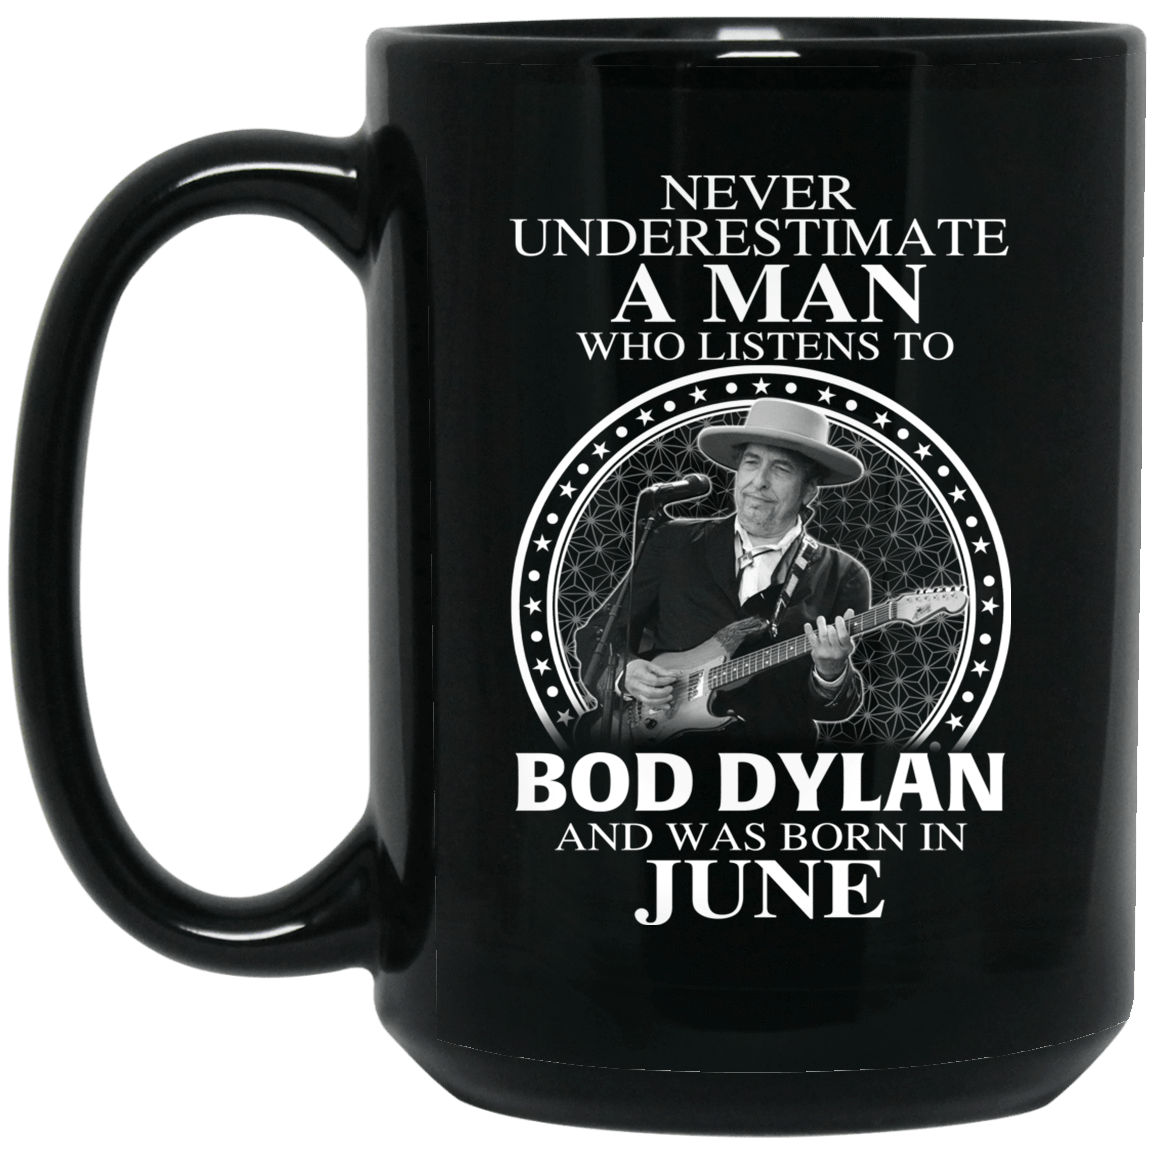 A Man Who Listens To Bob Dylan And Was Born In June Mug 1066-10182-76153604-49311 - Tee Ript